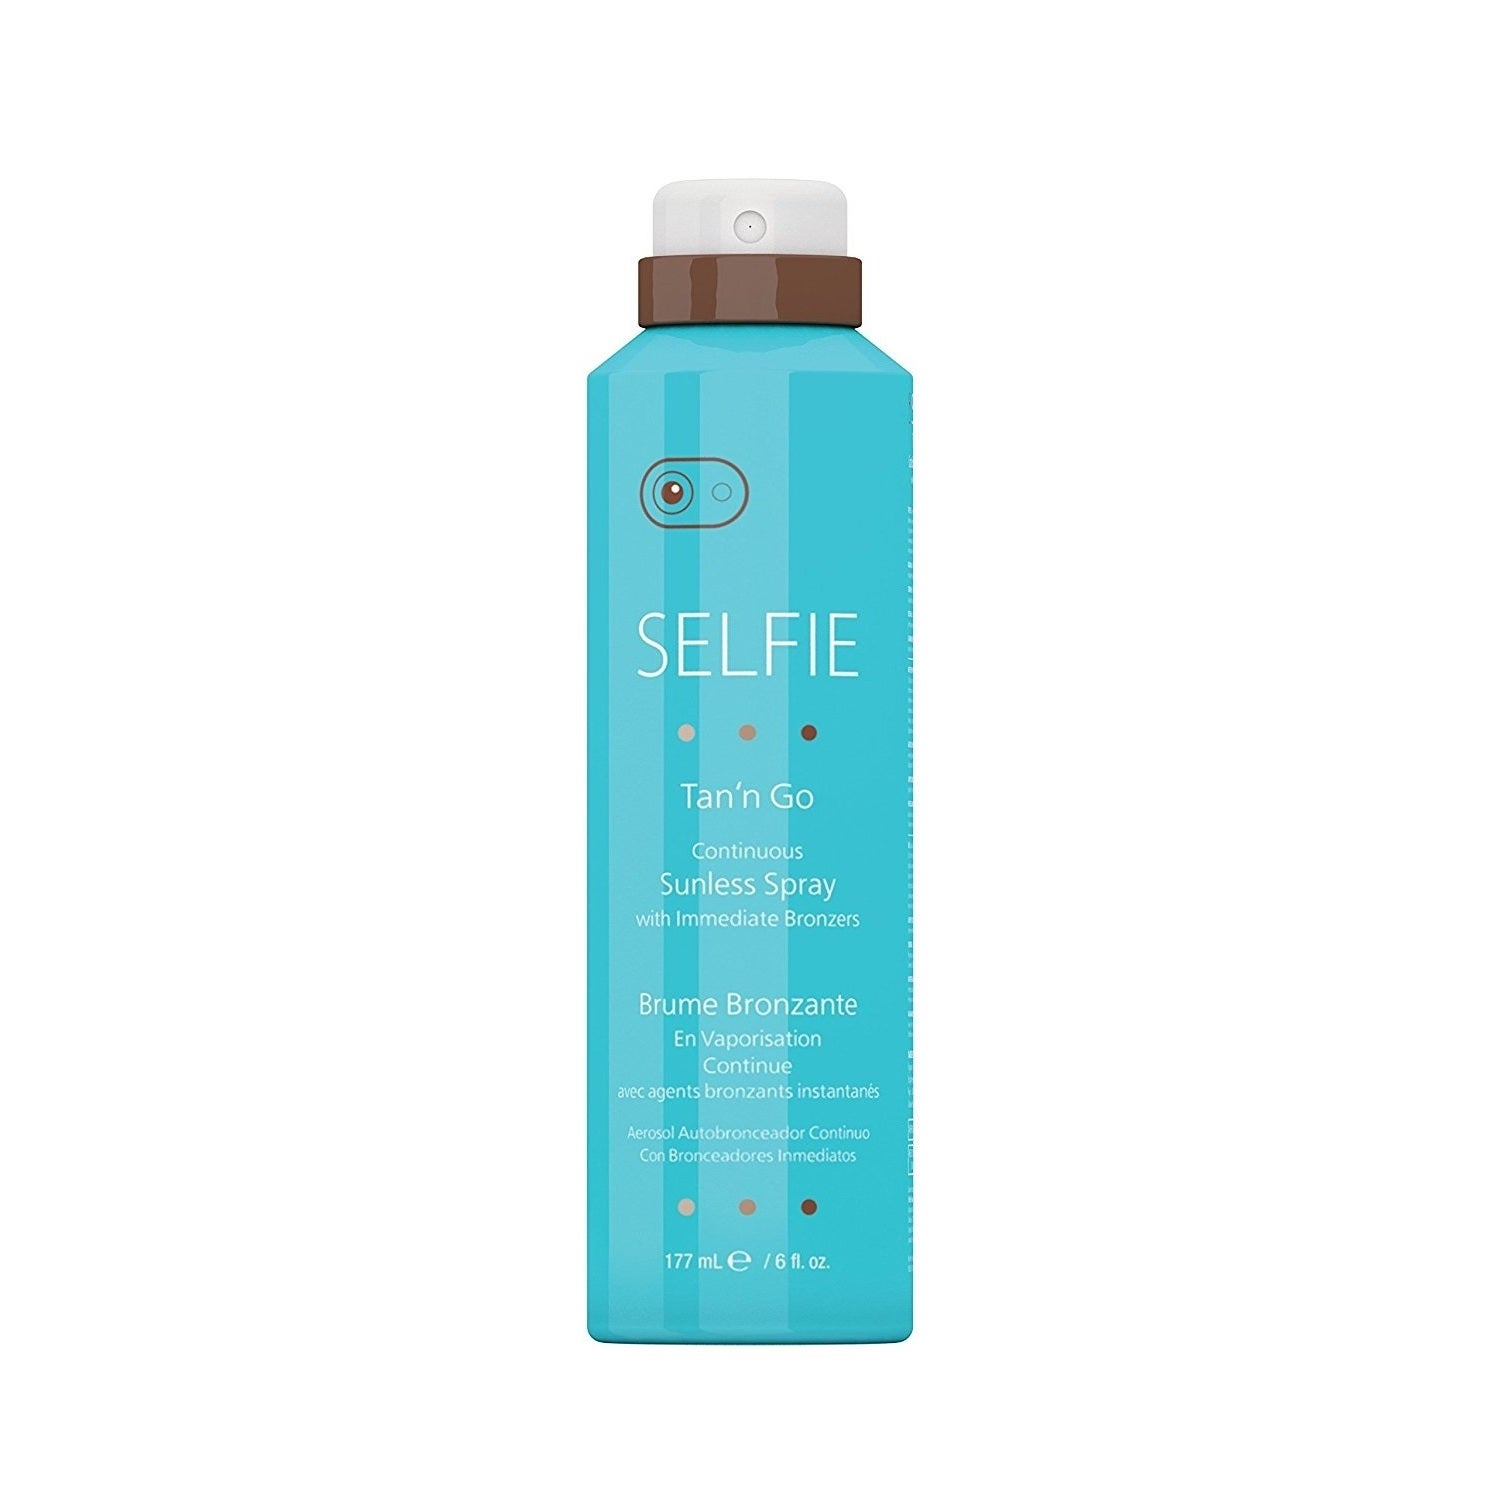 Selfie Tan'n Go 6-ounce Continuous Sunless Spray with Imm...